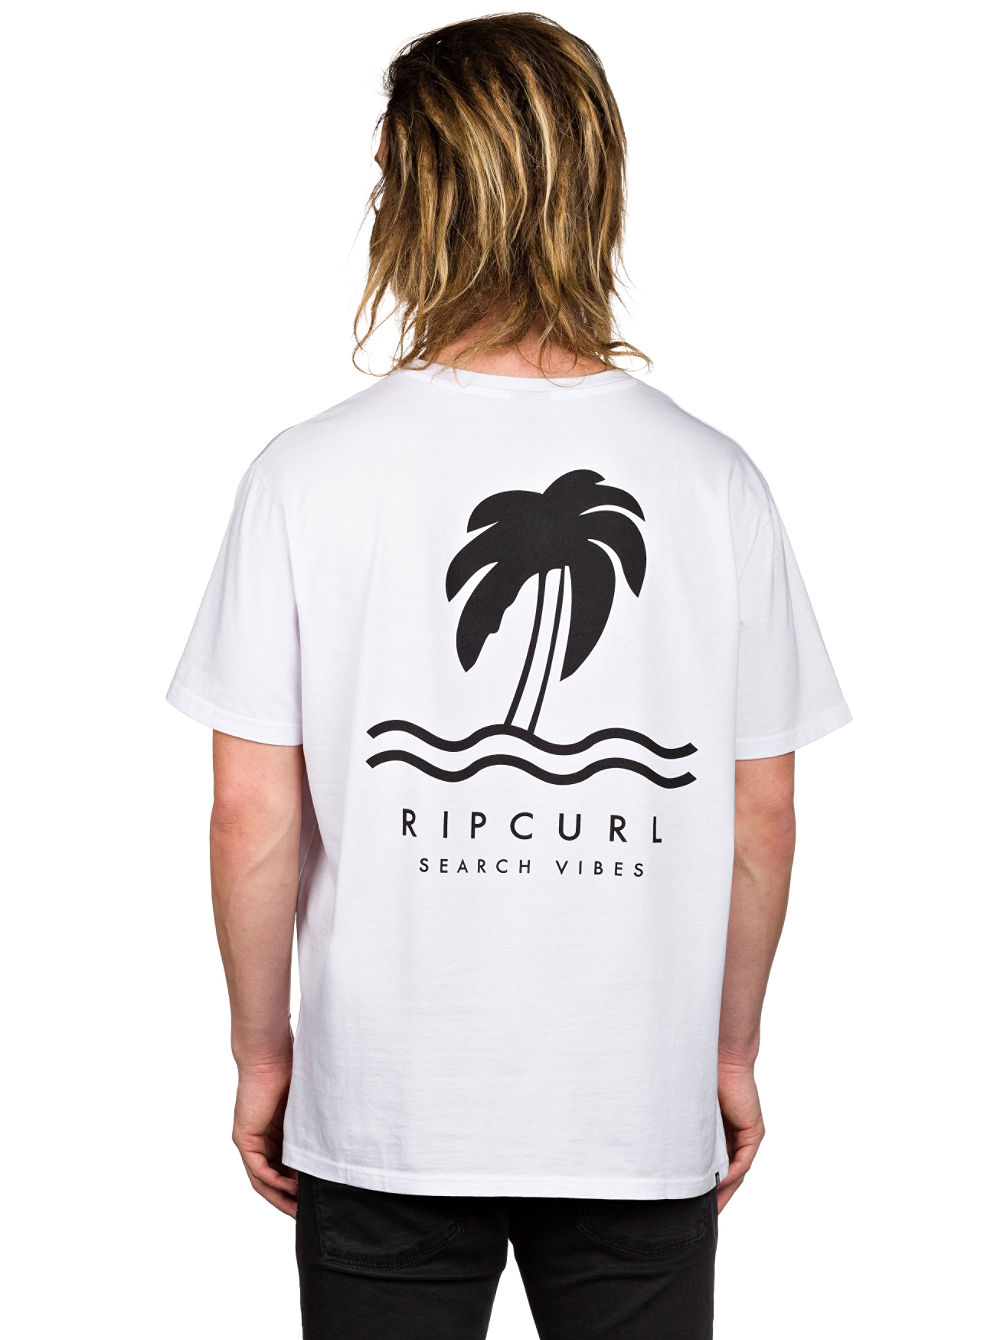 rip-curl-search-vibes-t-shirt